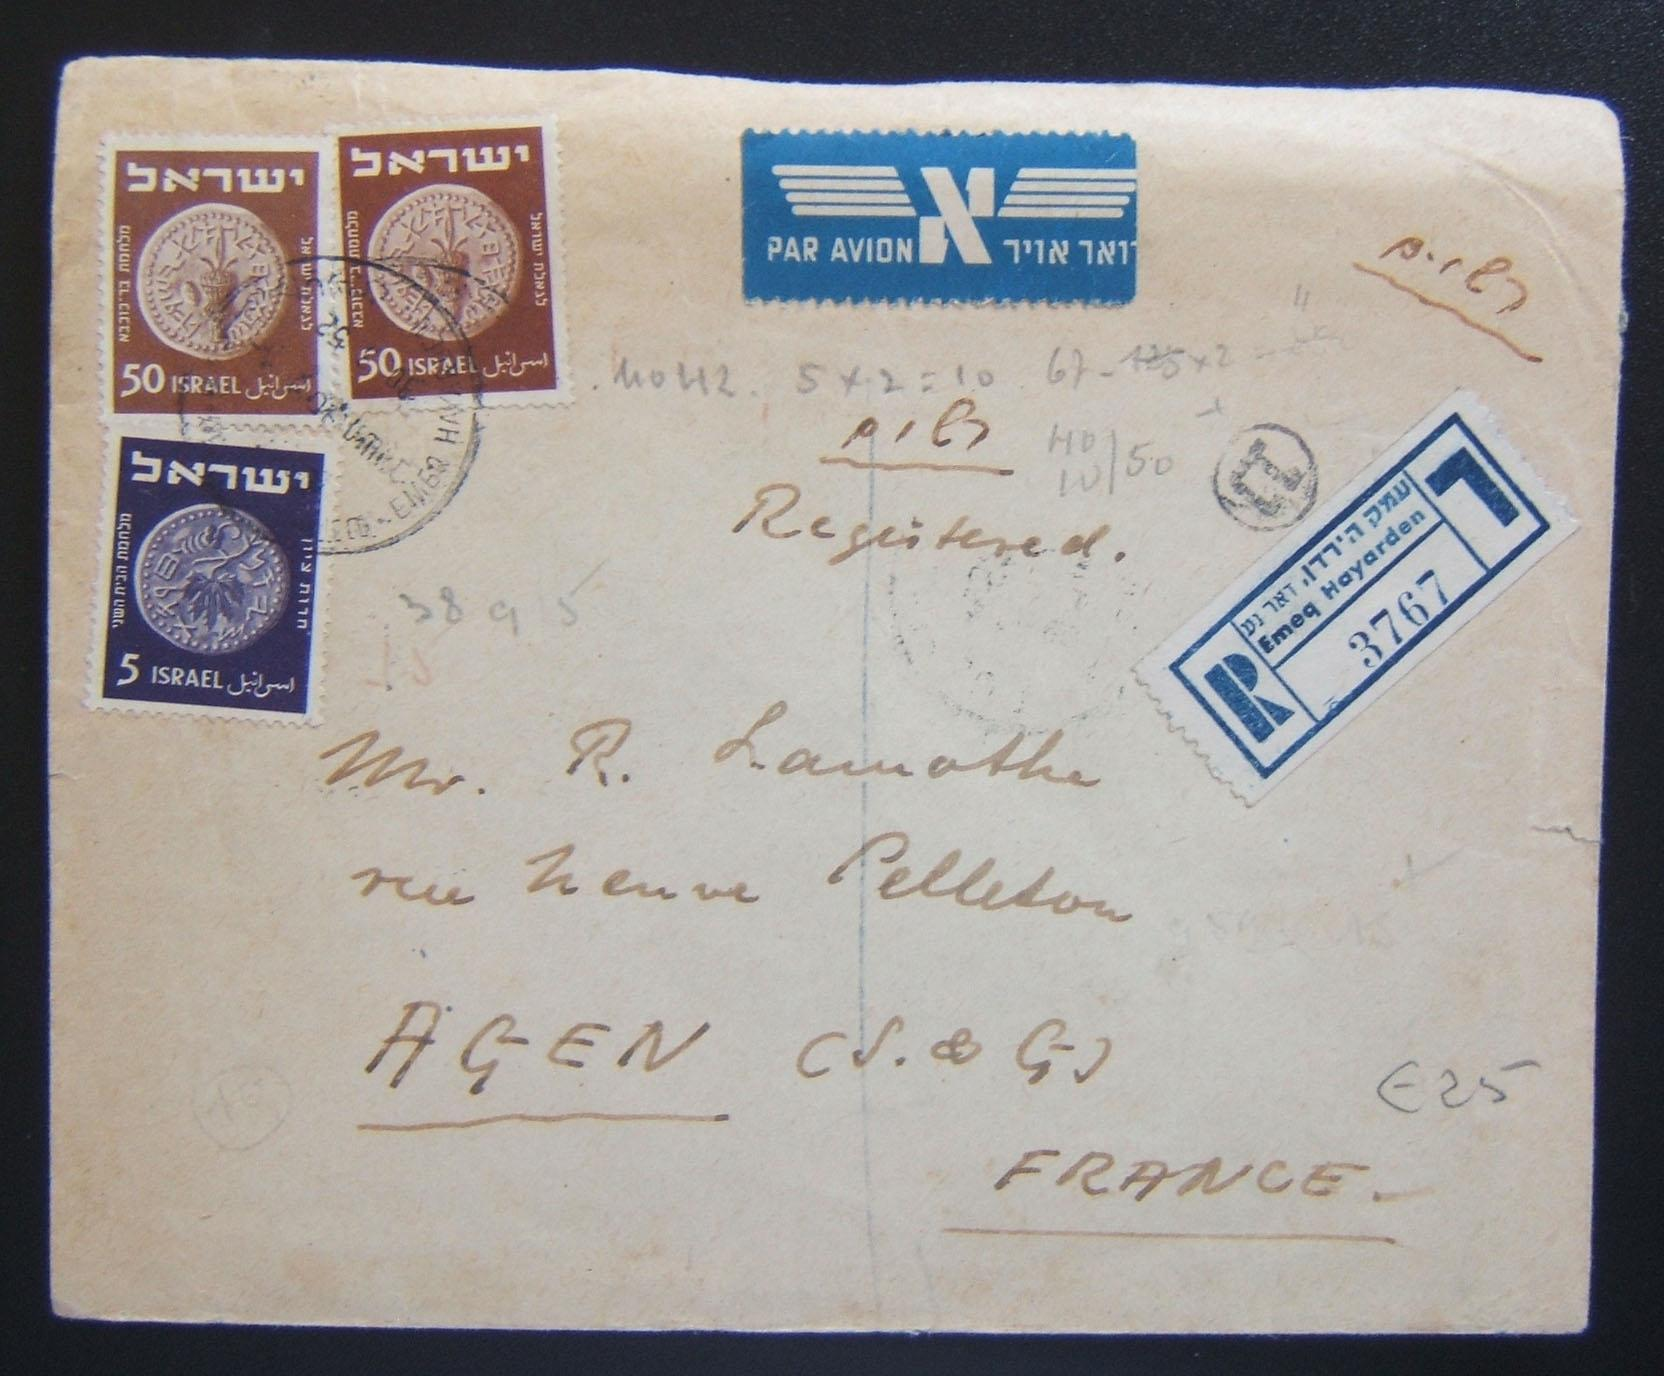 1952 scarce FA-3 period/small towns airmail: 30-3-52 reg. comm cv ex EMEQ HAYARDEN to FRANCE franked 105pr per FA-3 period rate (45pr letter + 60pr reg fee) on 2nd to last day of t